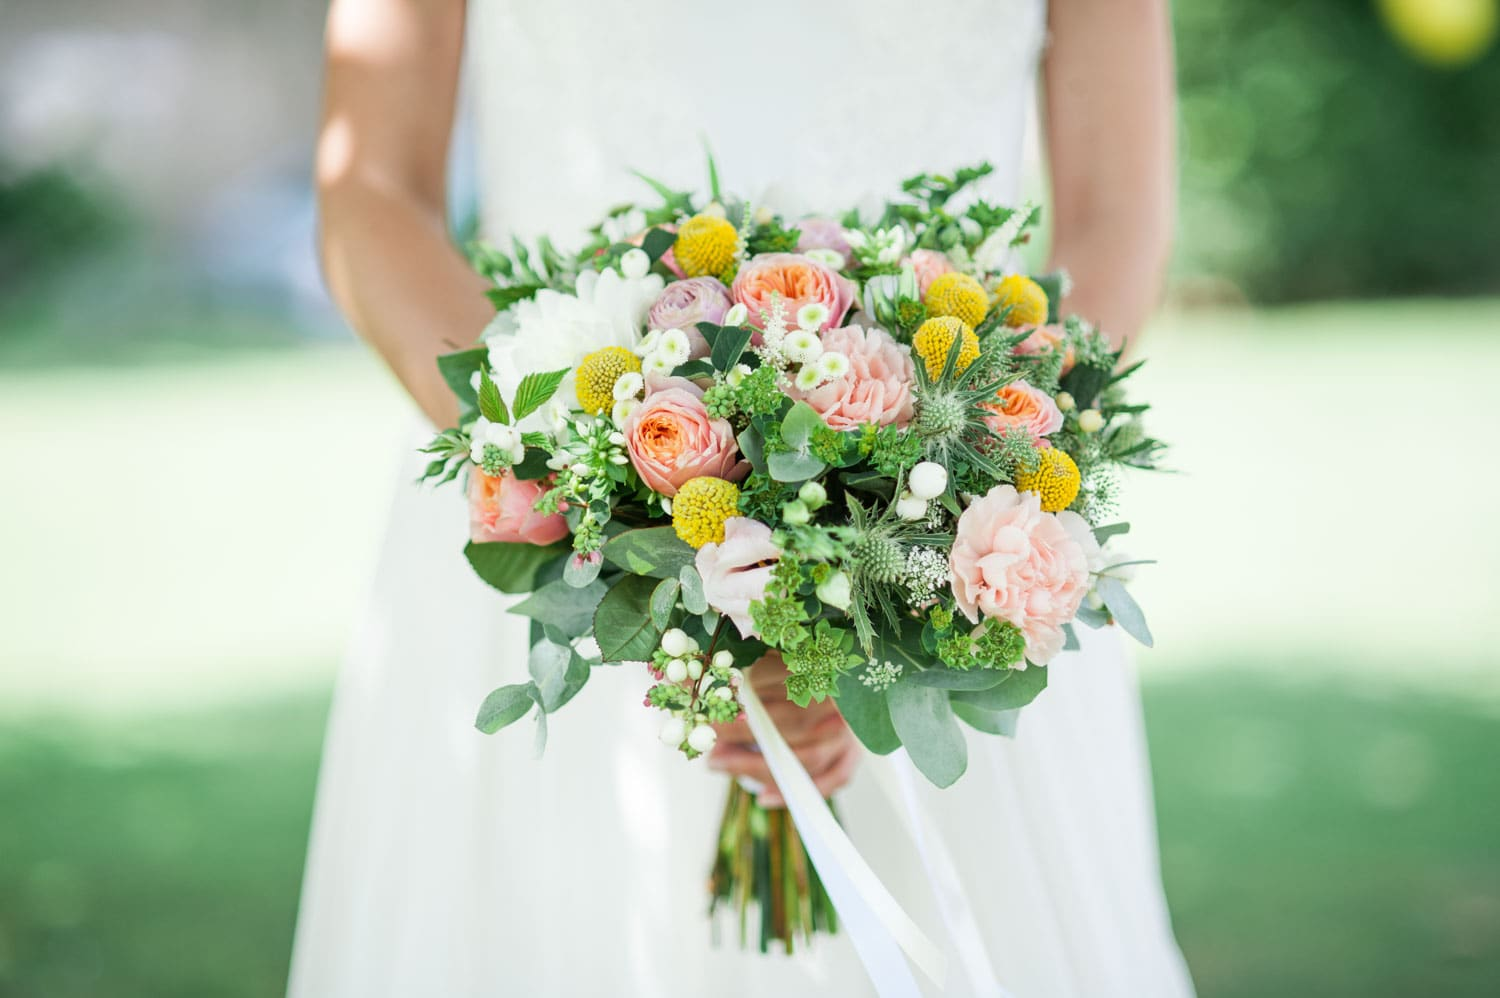 Photo du bouquet